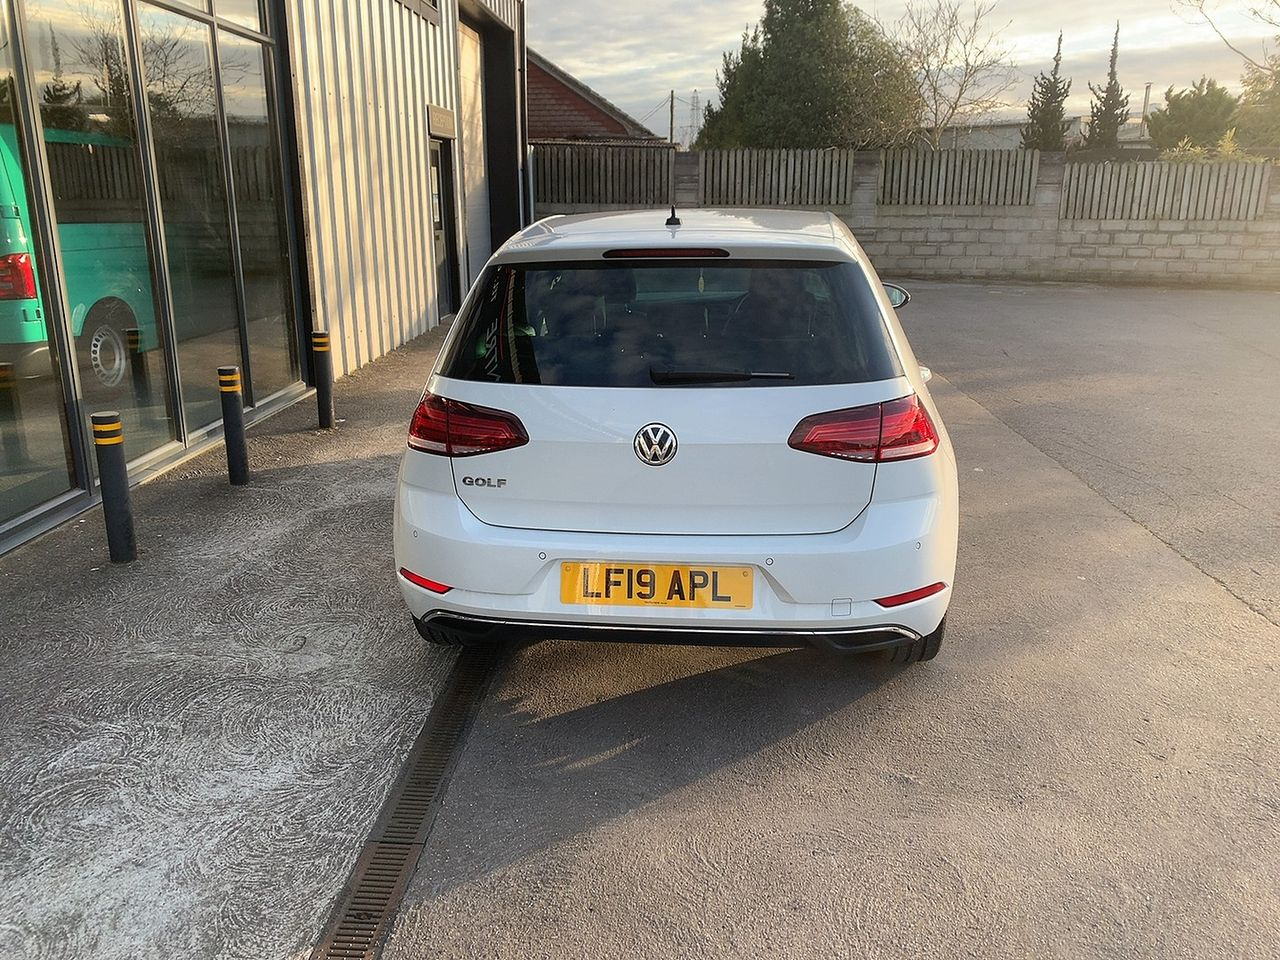 2019 VOLKSWAGEN Golf Match TSI 1.0 110 PS DSG - Picture 5 of 10